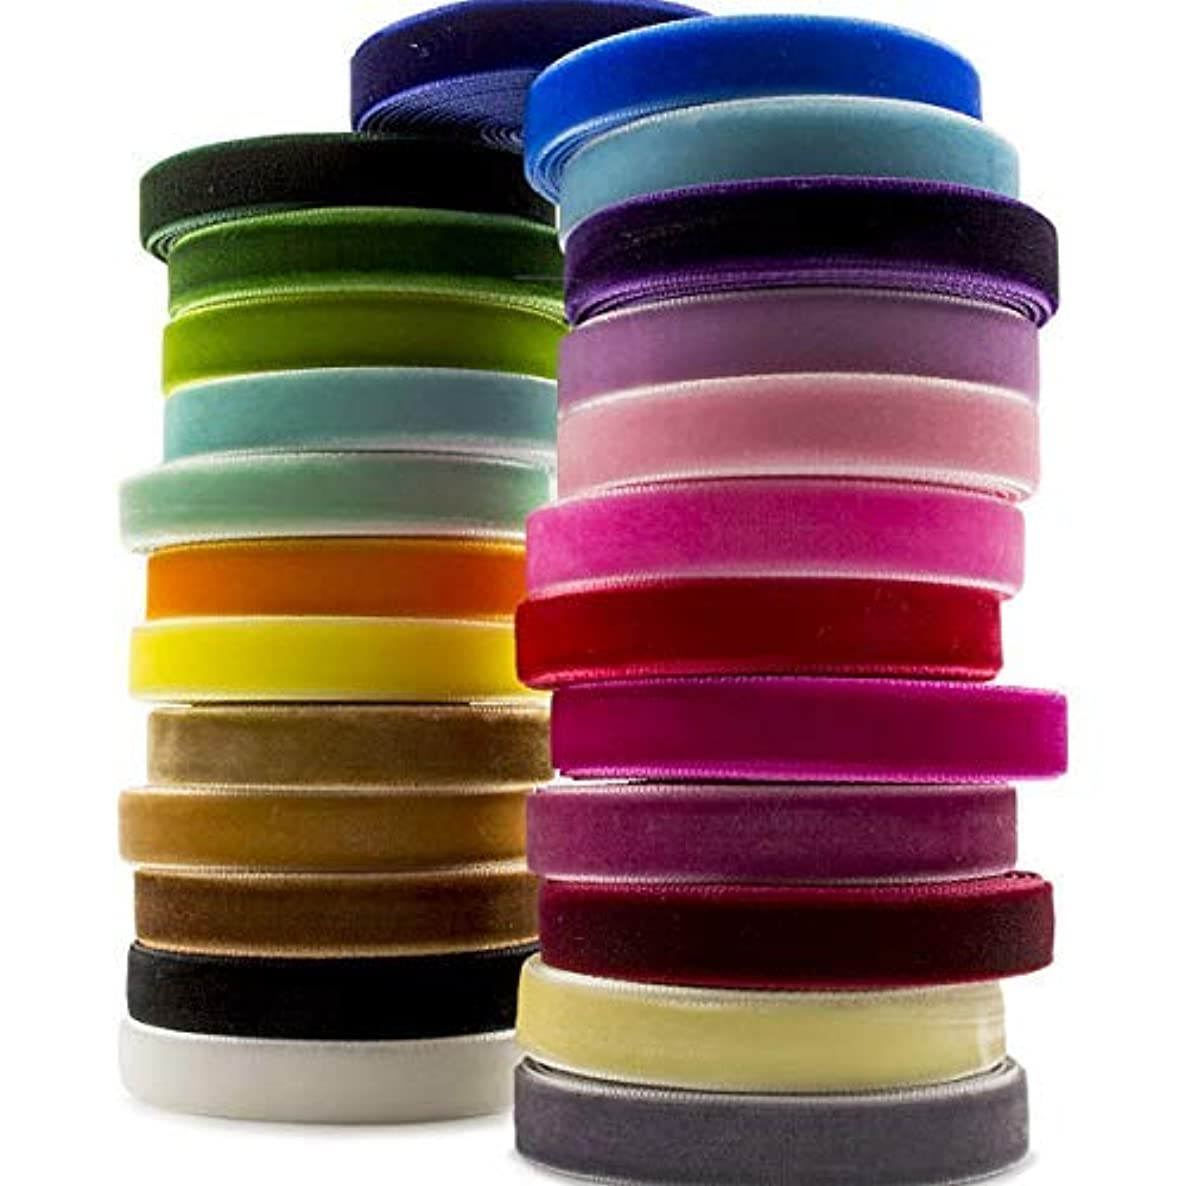 Summer-Ray 50 Yards (2 Yards x 25 Colors) 3/8